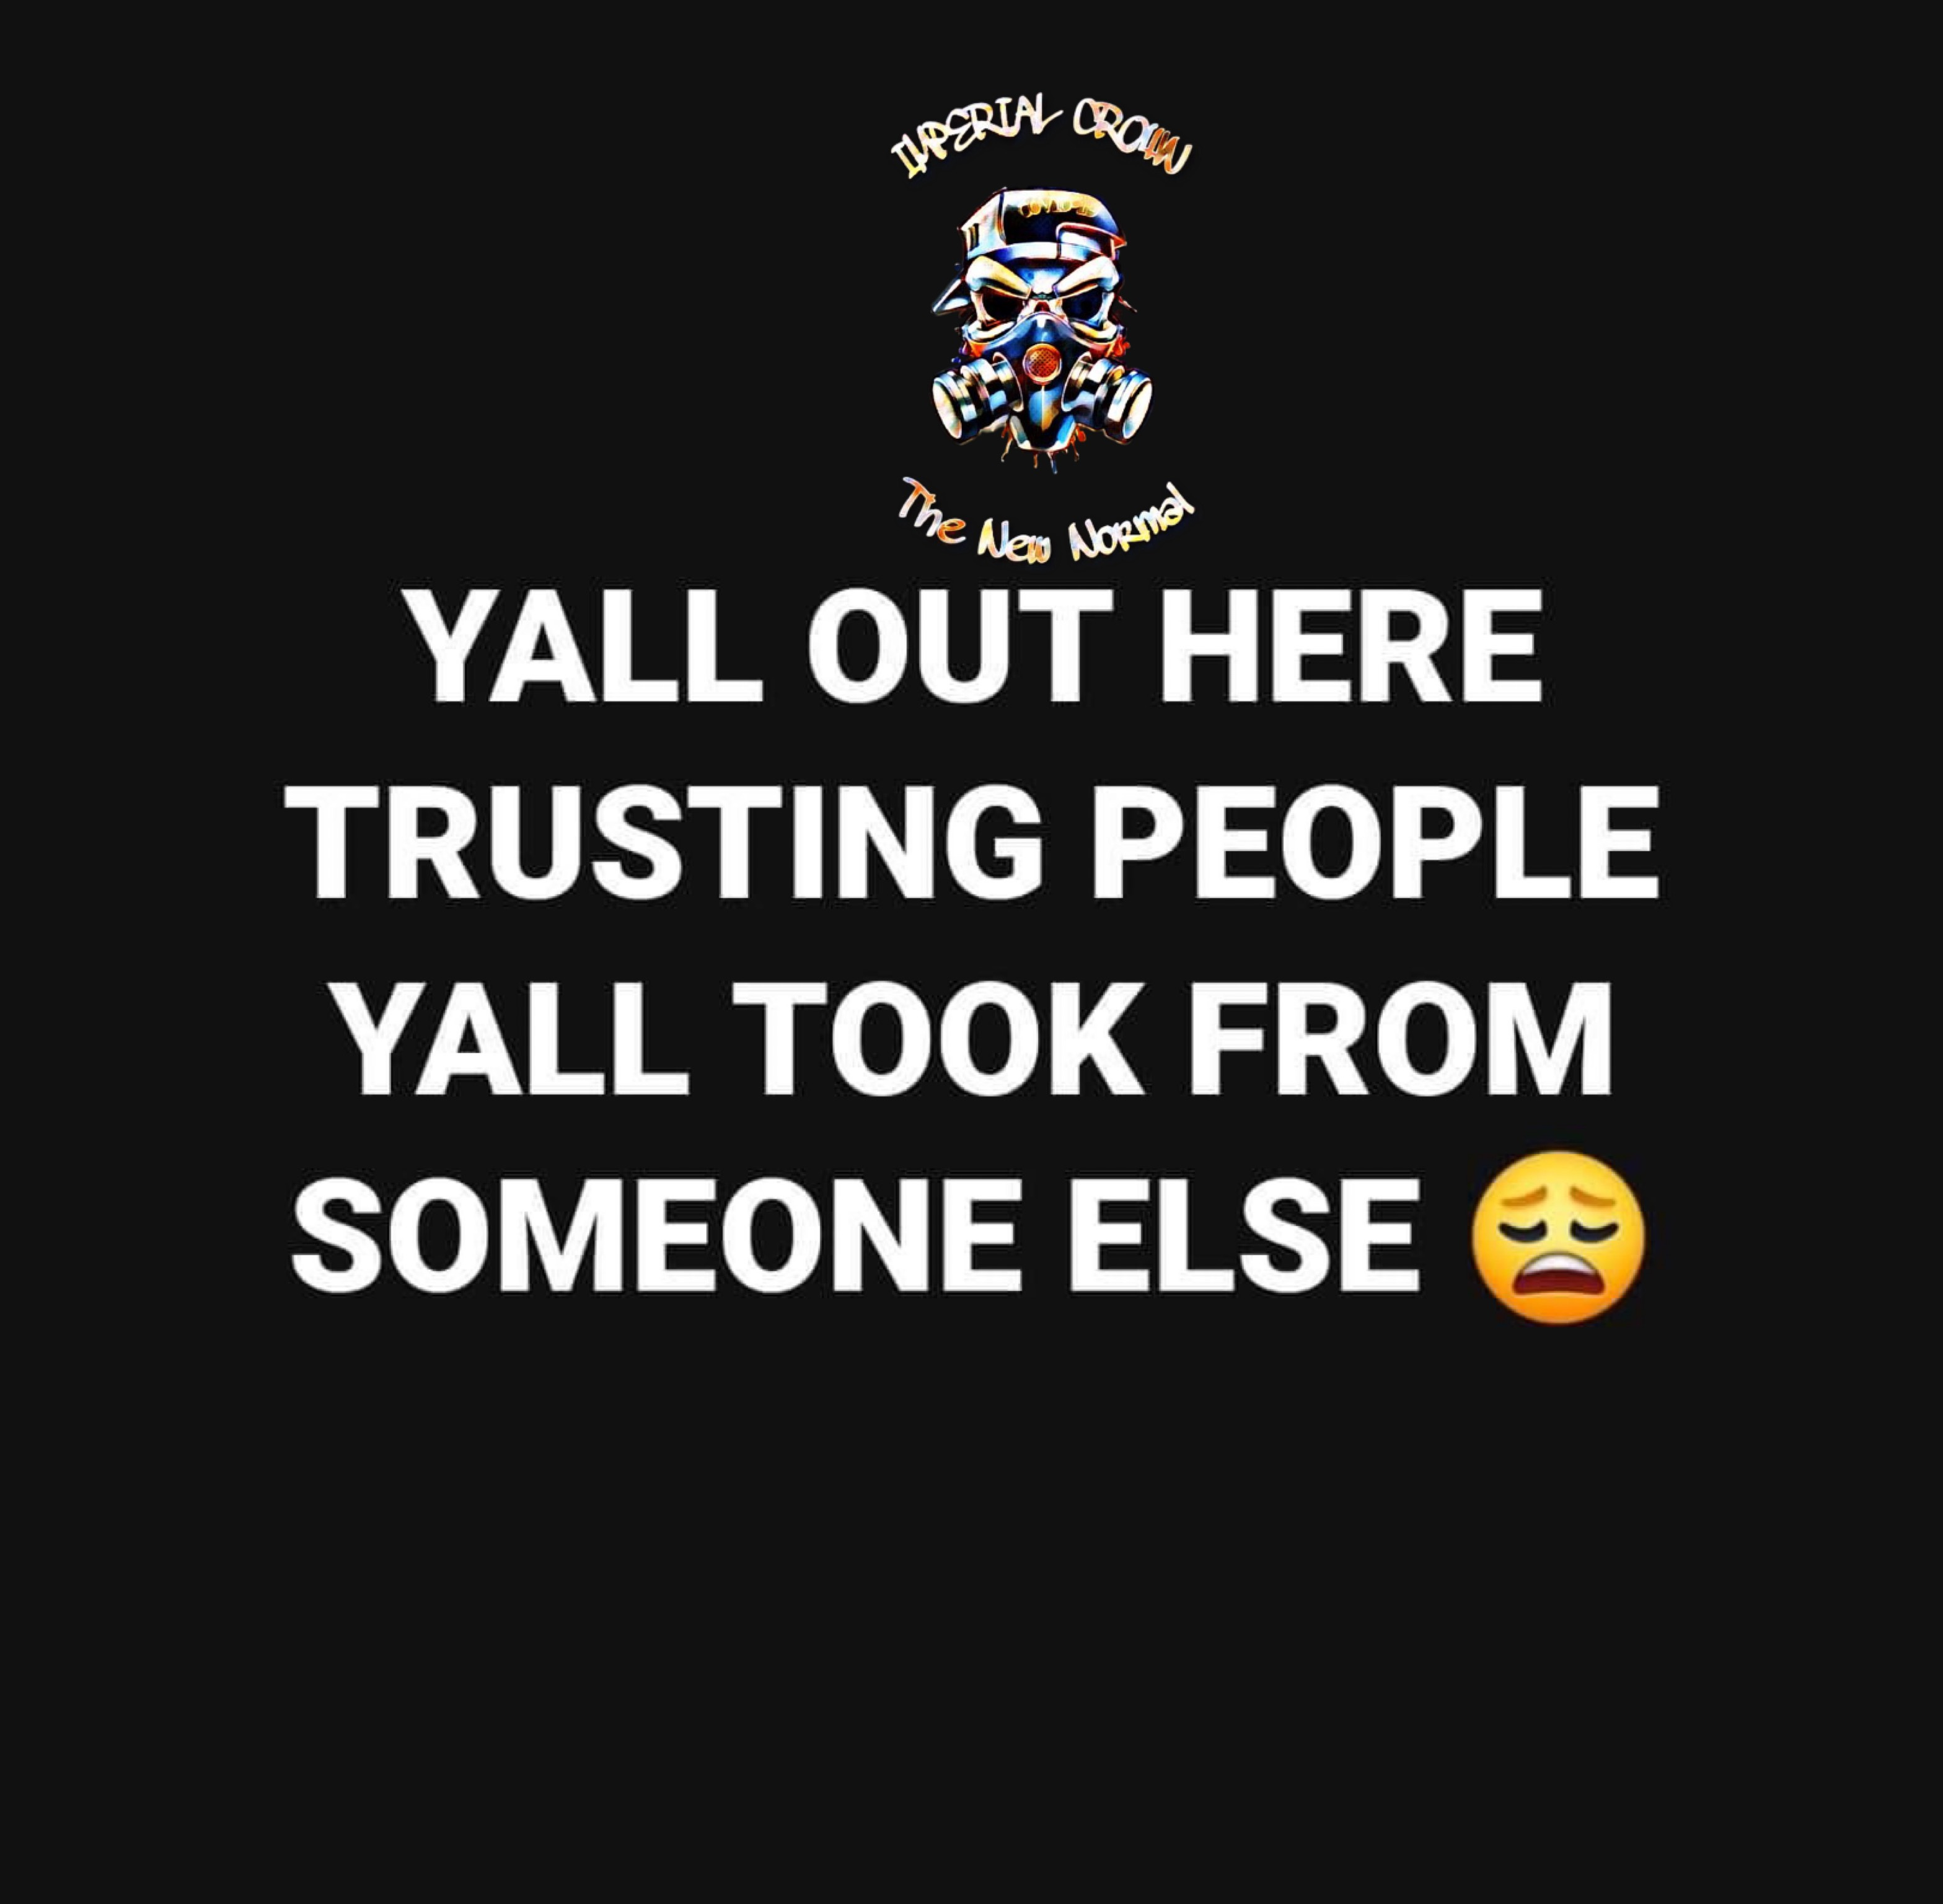 Yell out here trusting people y'all took from someone else